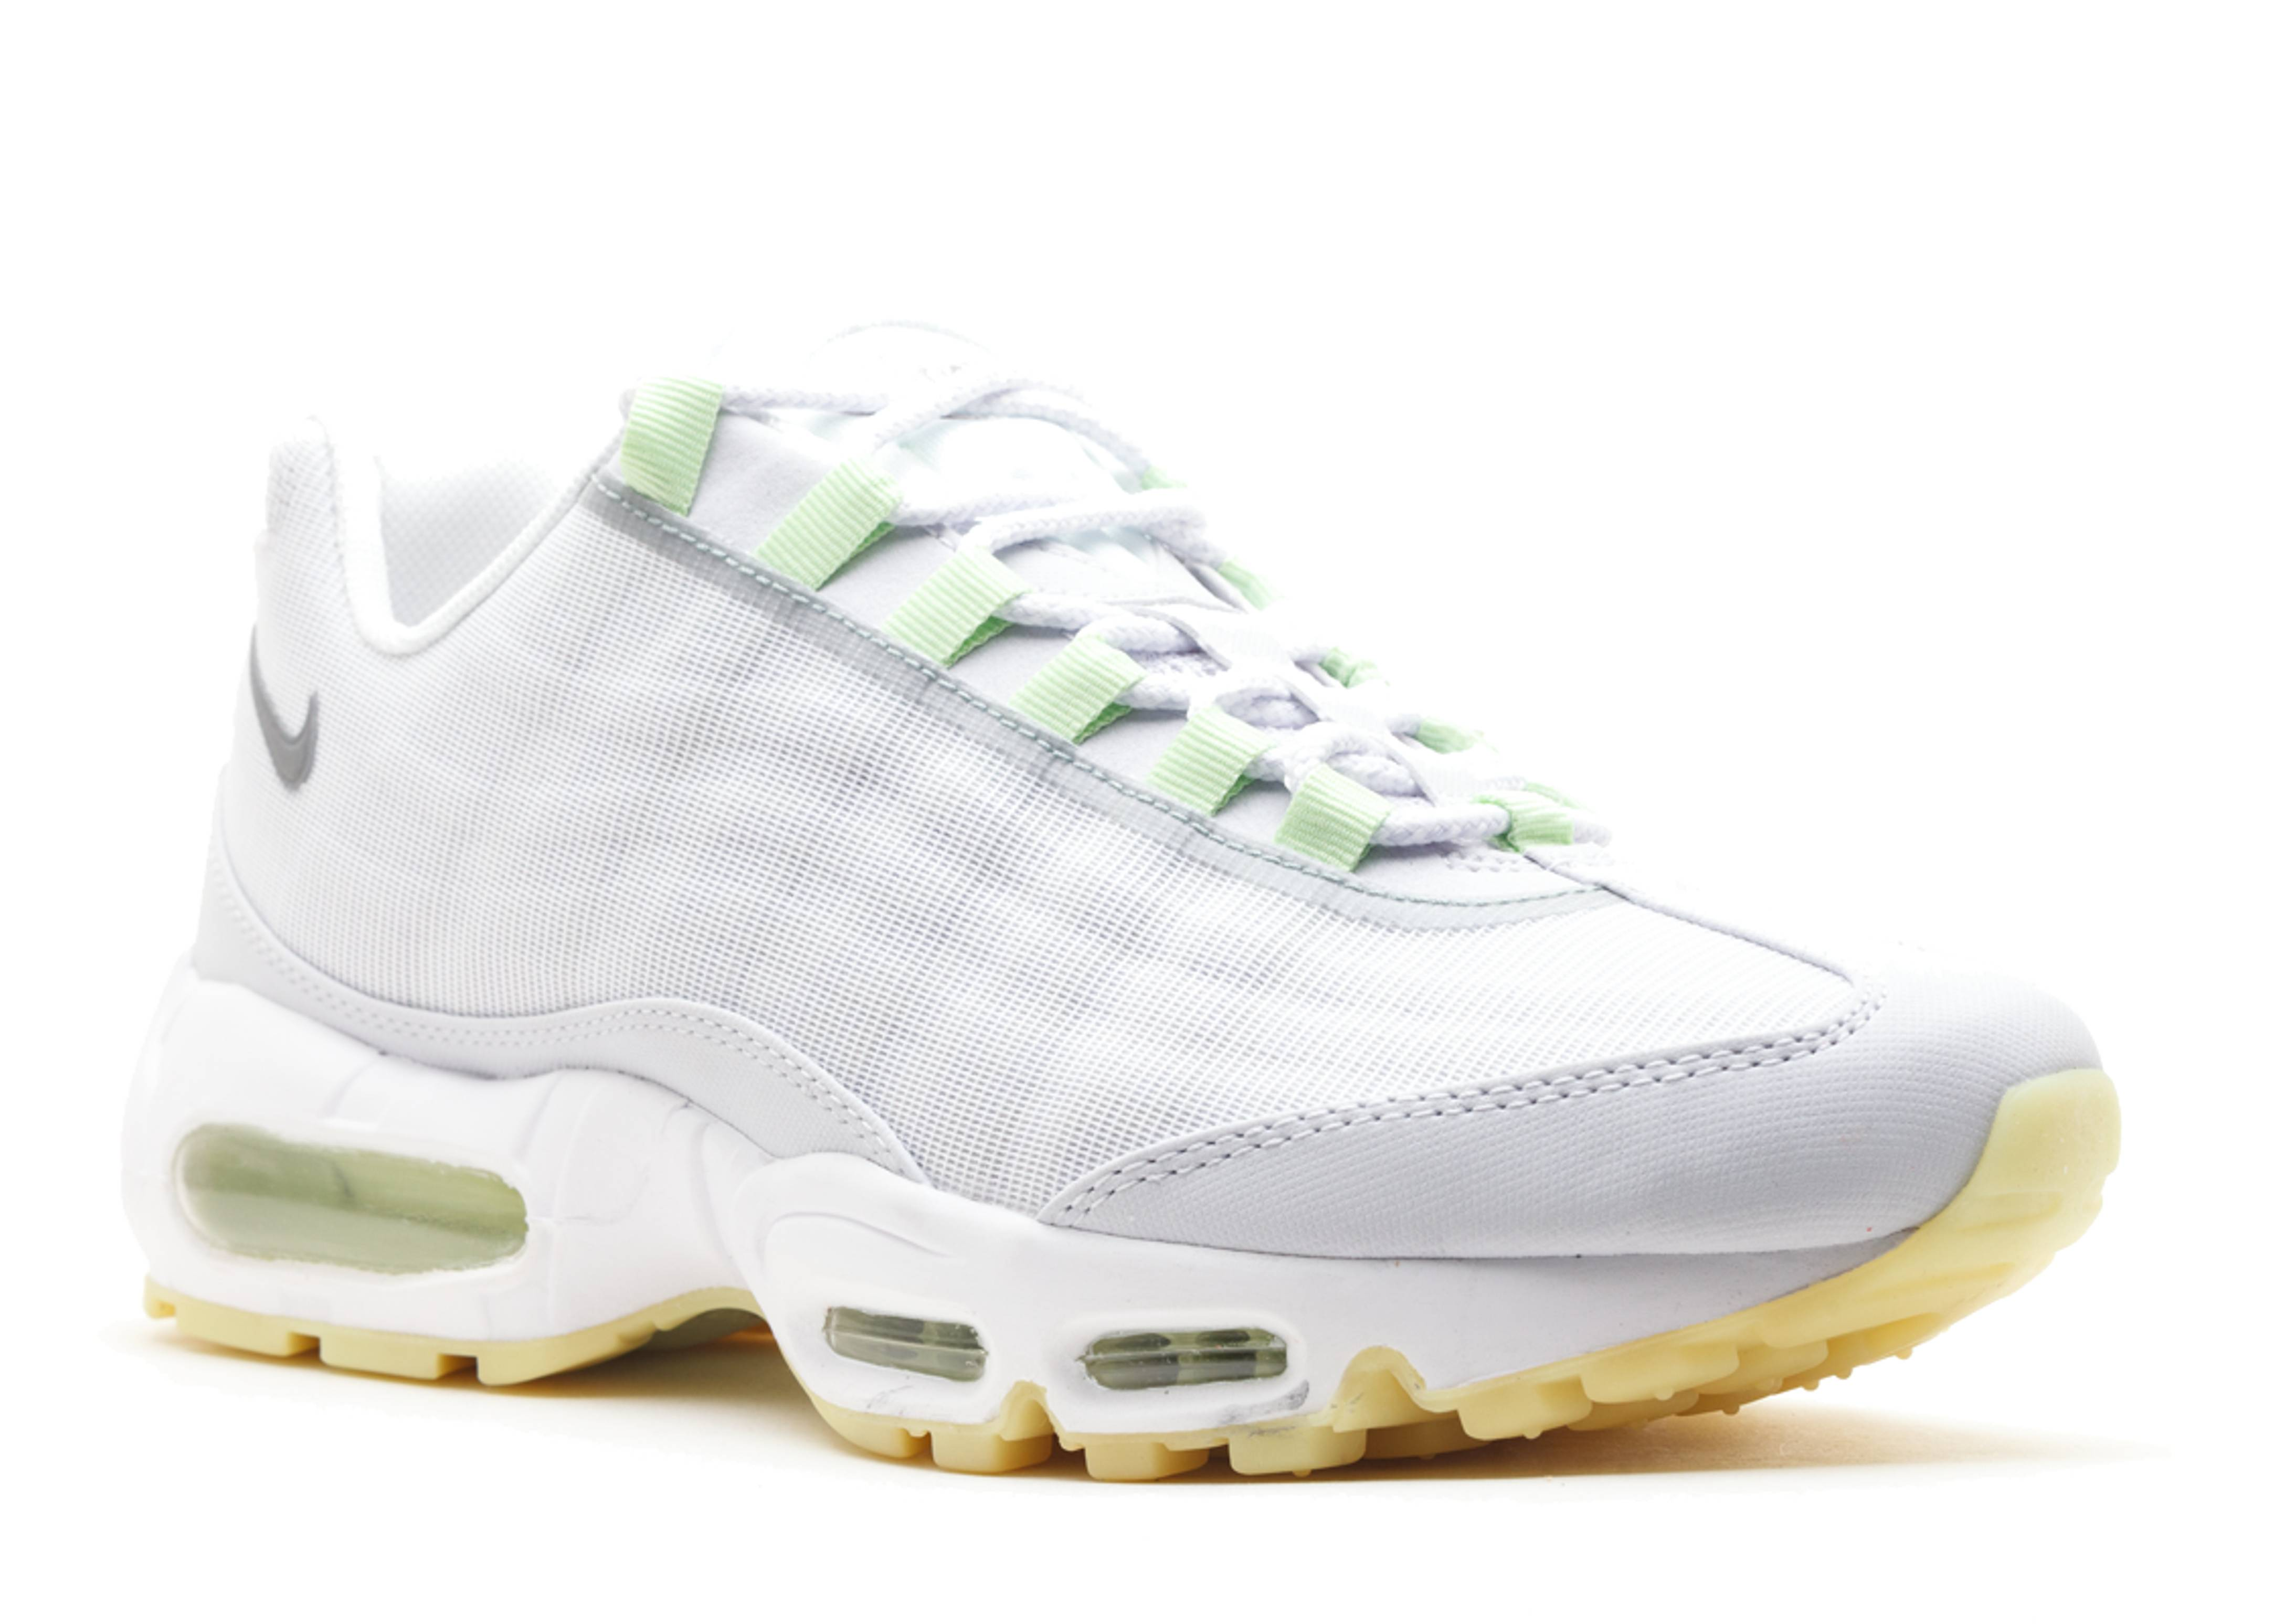 save off b3117 0cfee nike air max prm glow in the dark